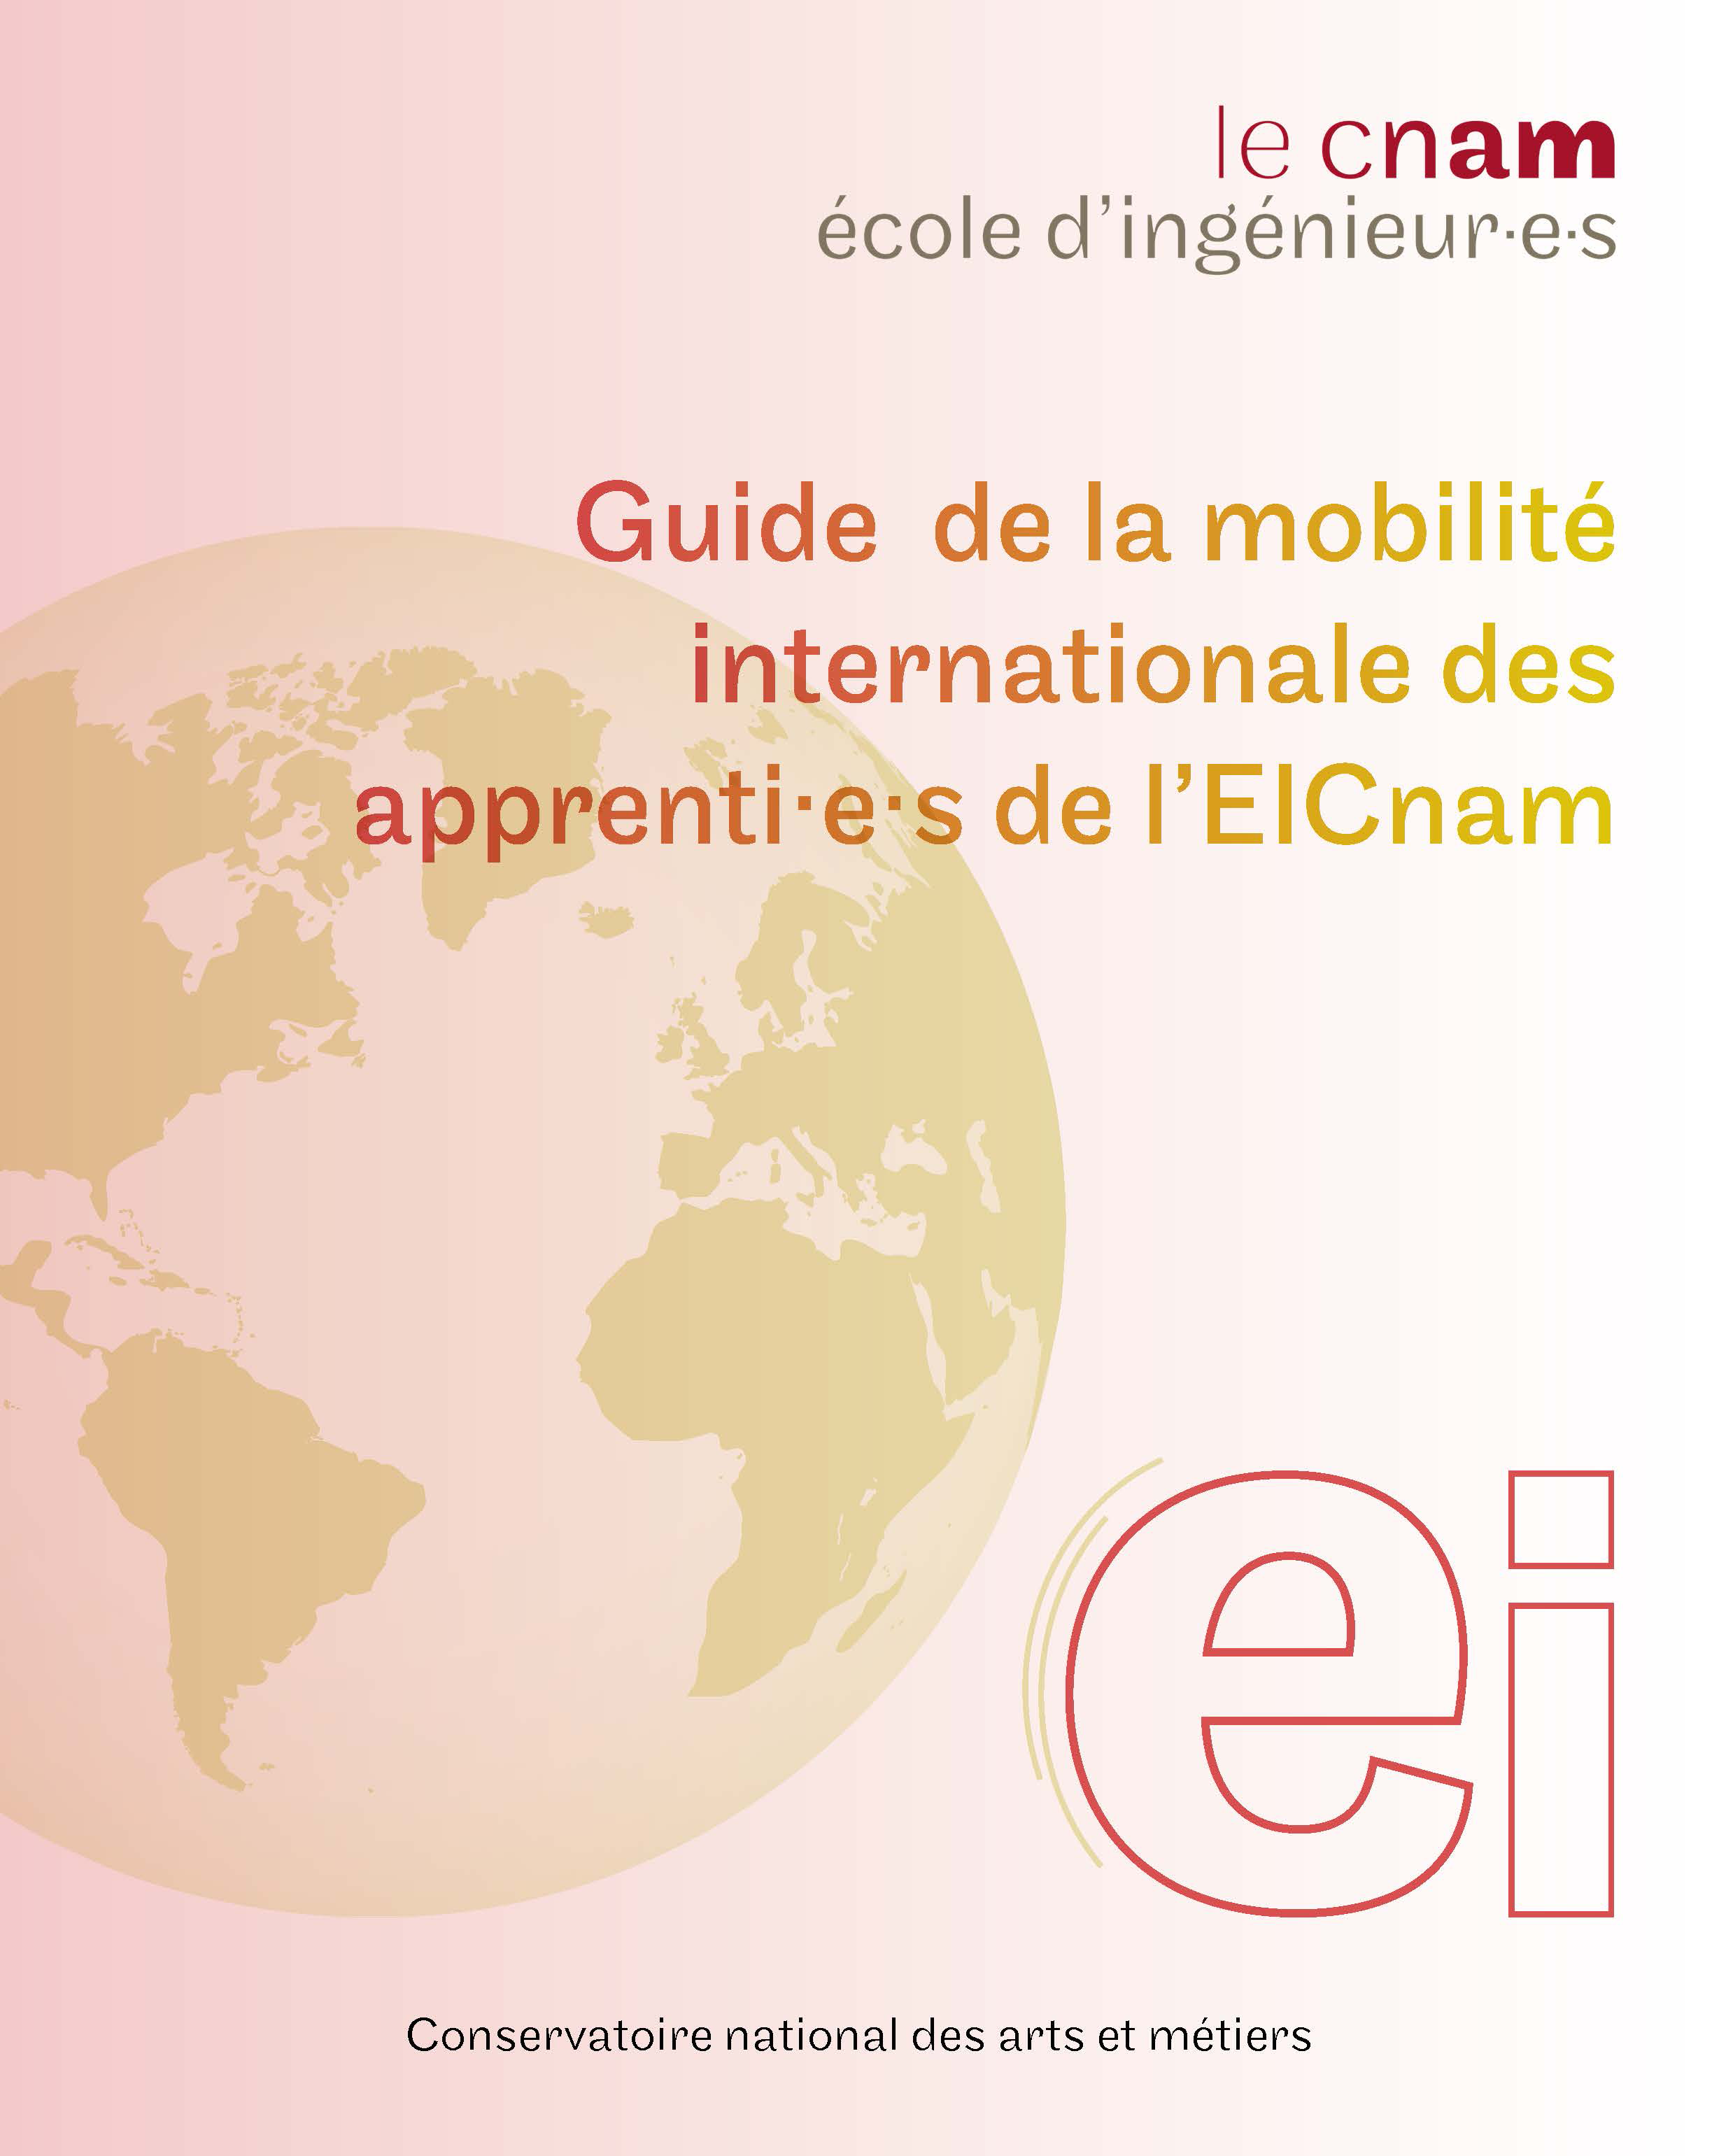 Guide de la mobilité internationale